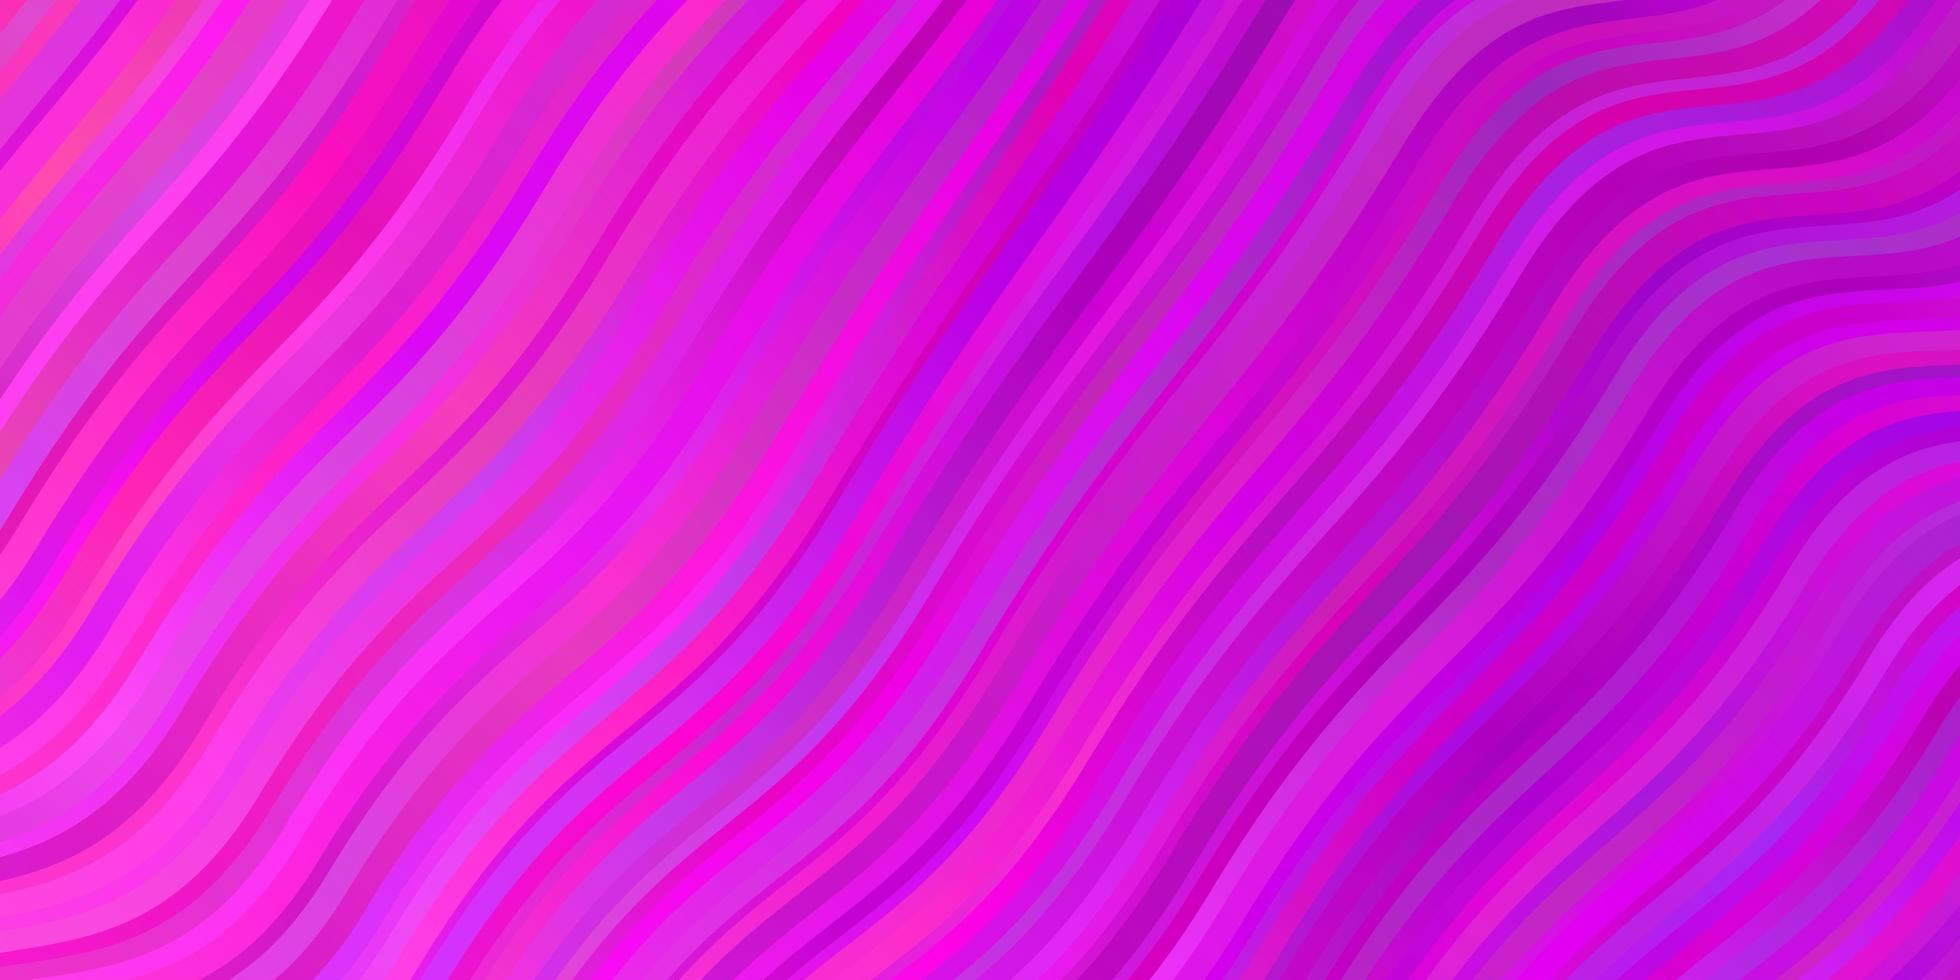 Light Pink vector background with wry lines.